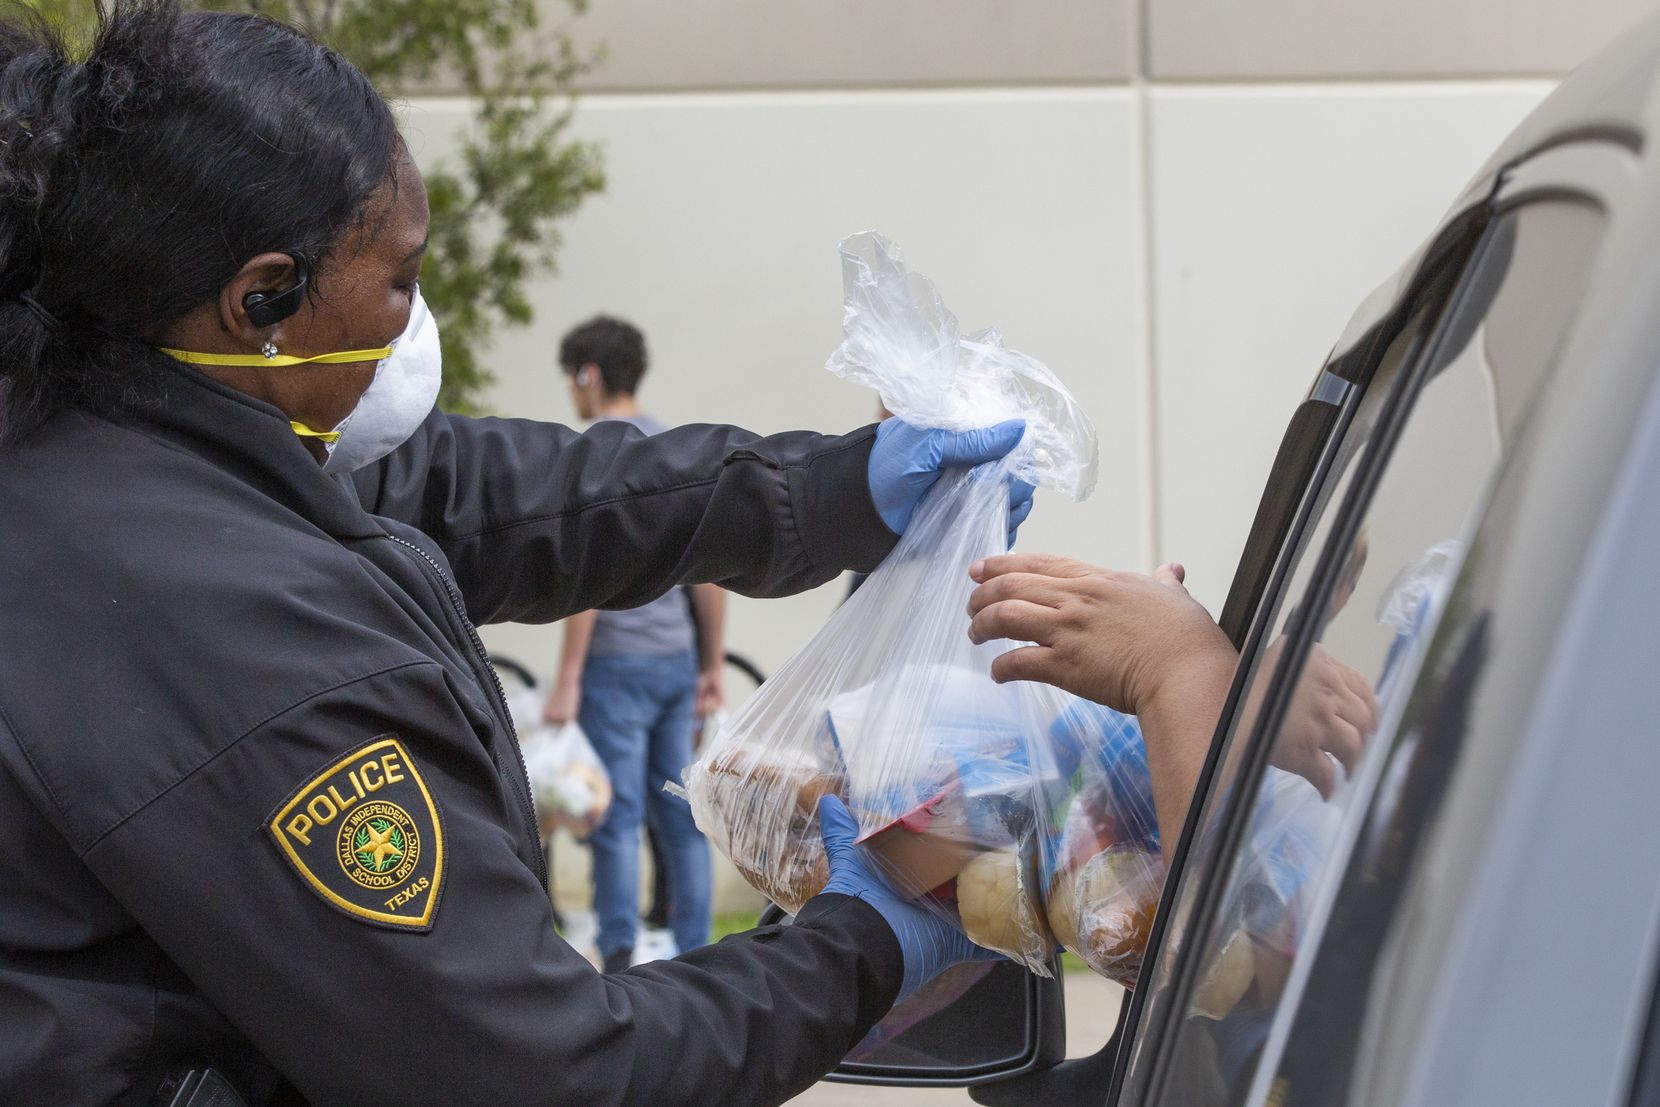 Dallas police Officer Sherneka Coleman distributed meals at Medrano Middle School in Dallas on Thursday.